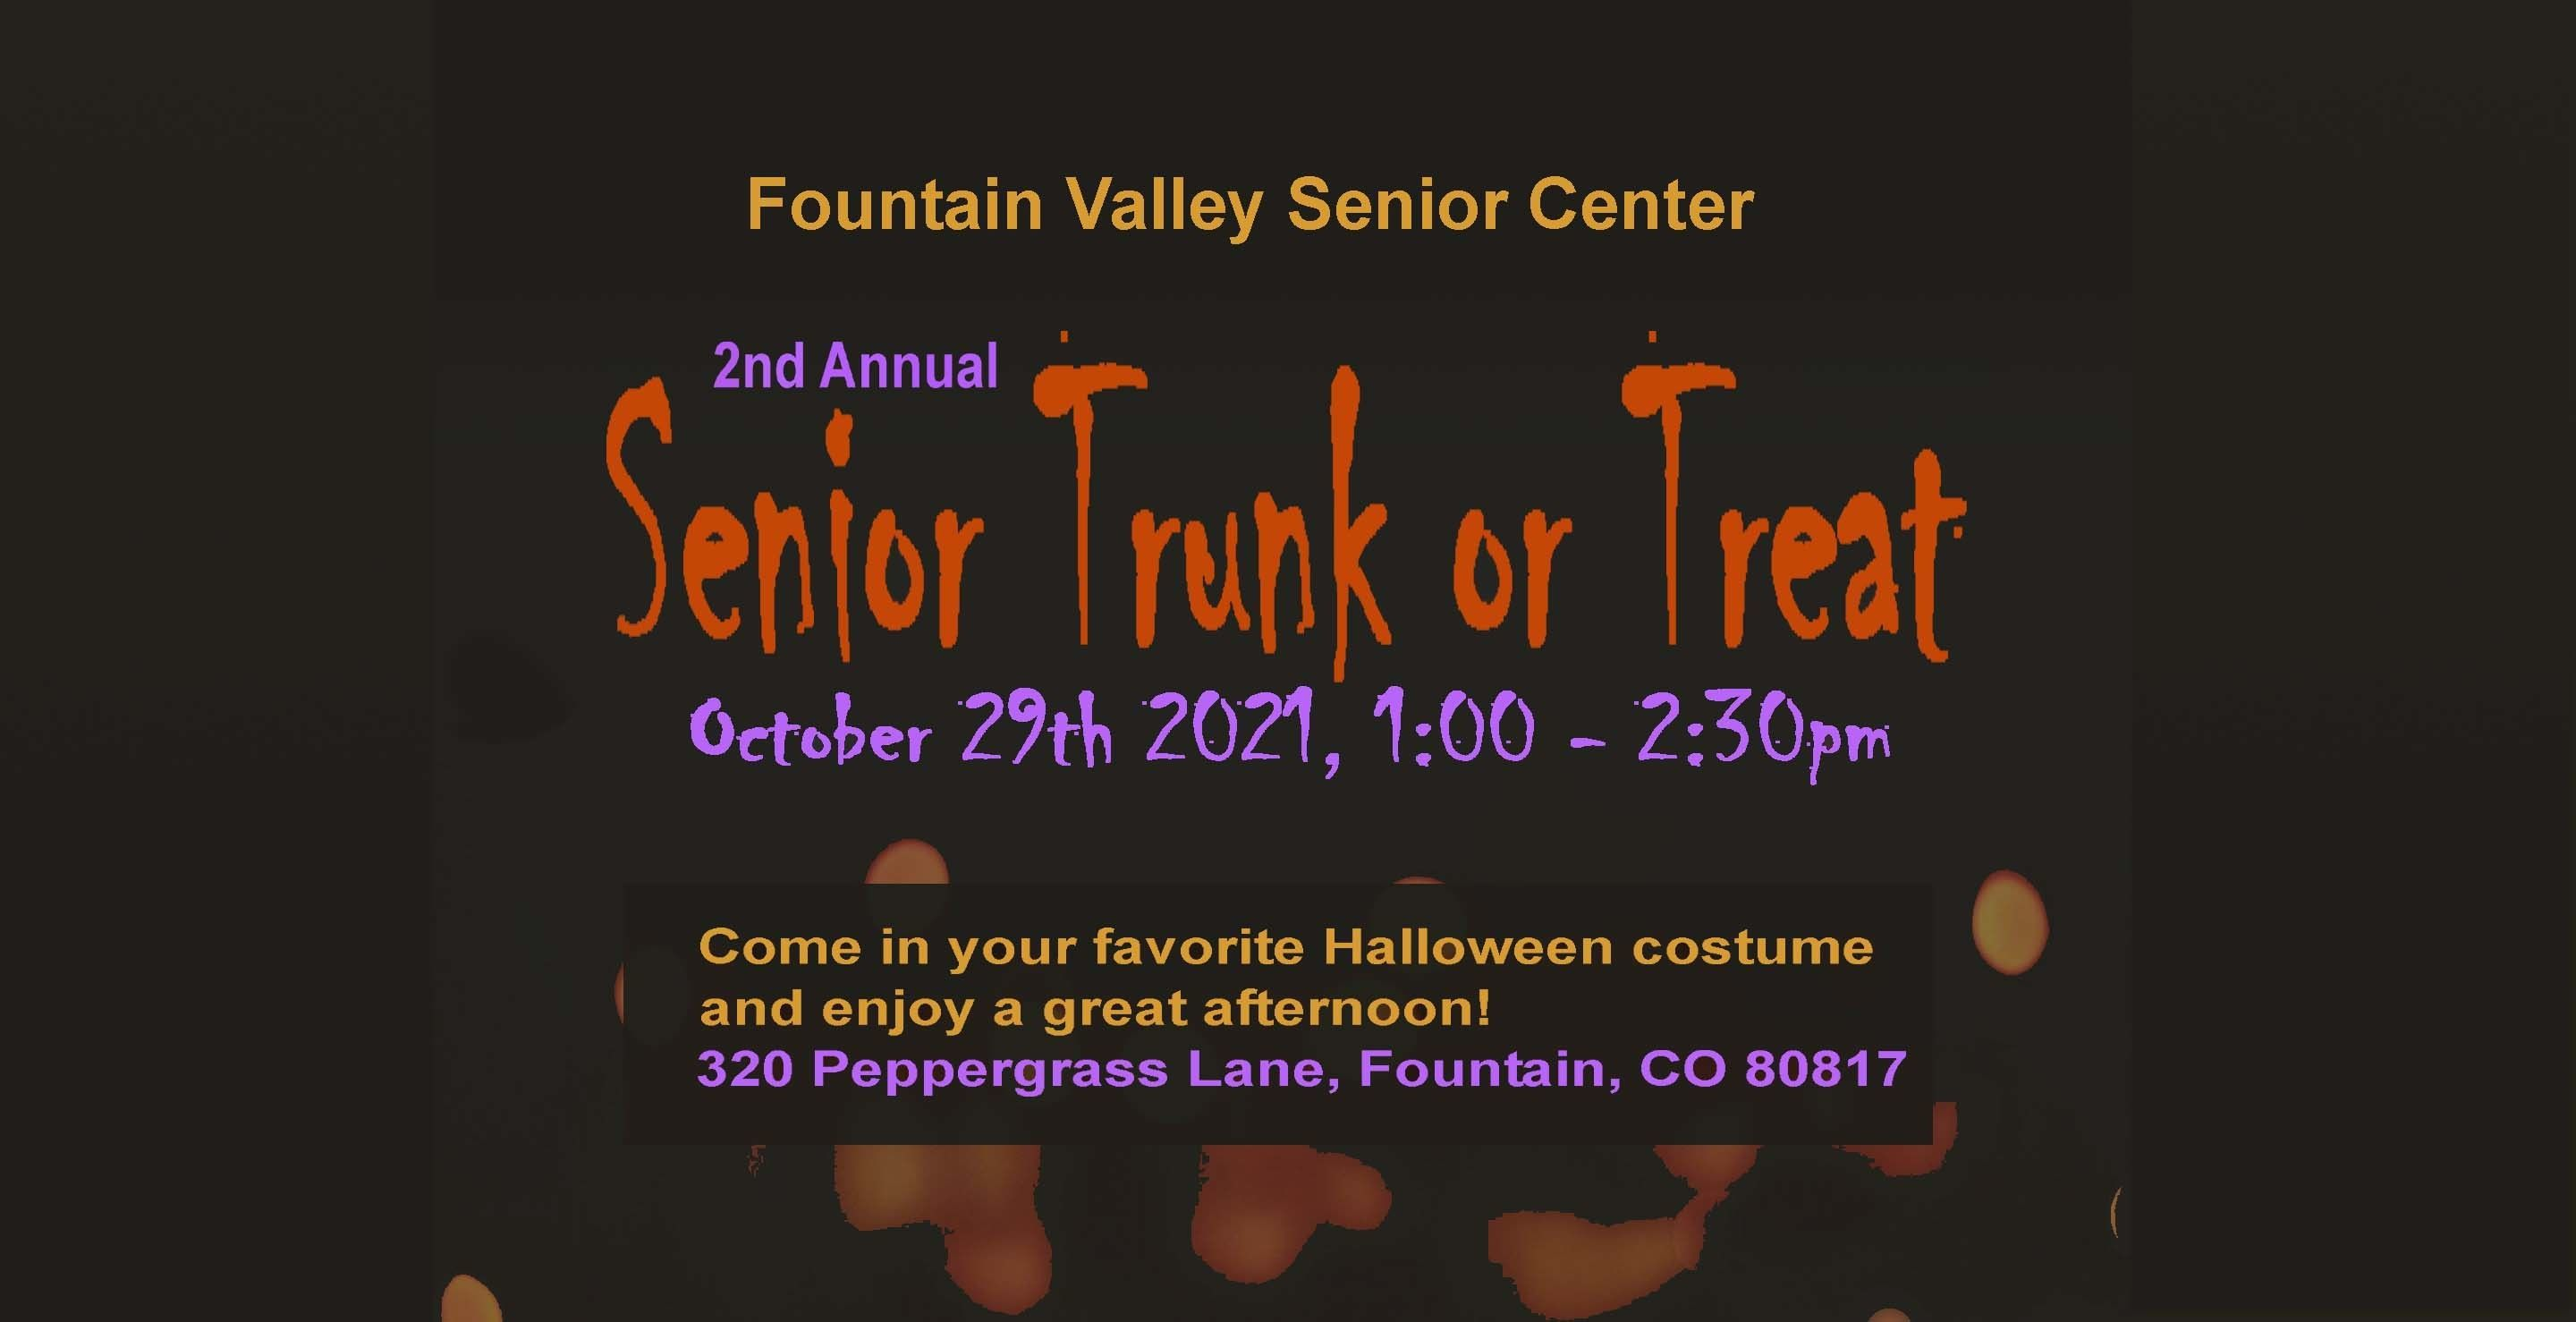 2nd Annual Senior Trunk or Treat